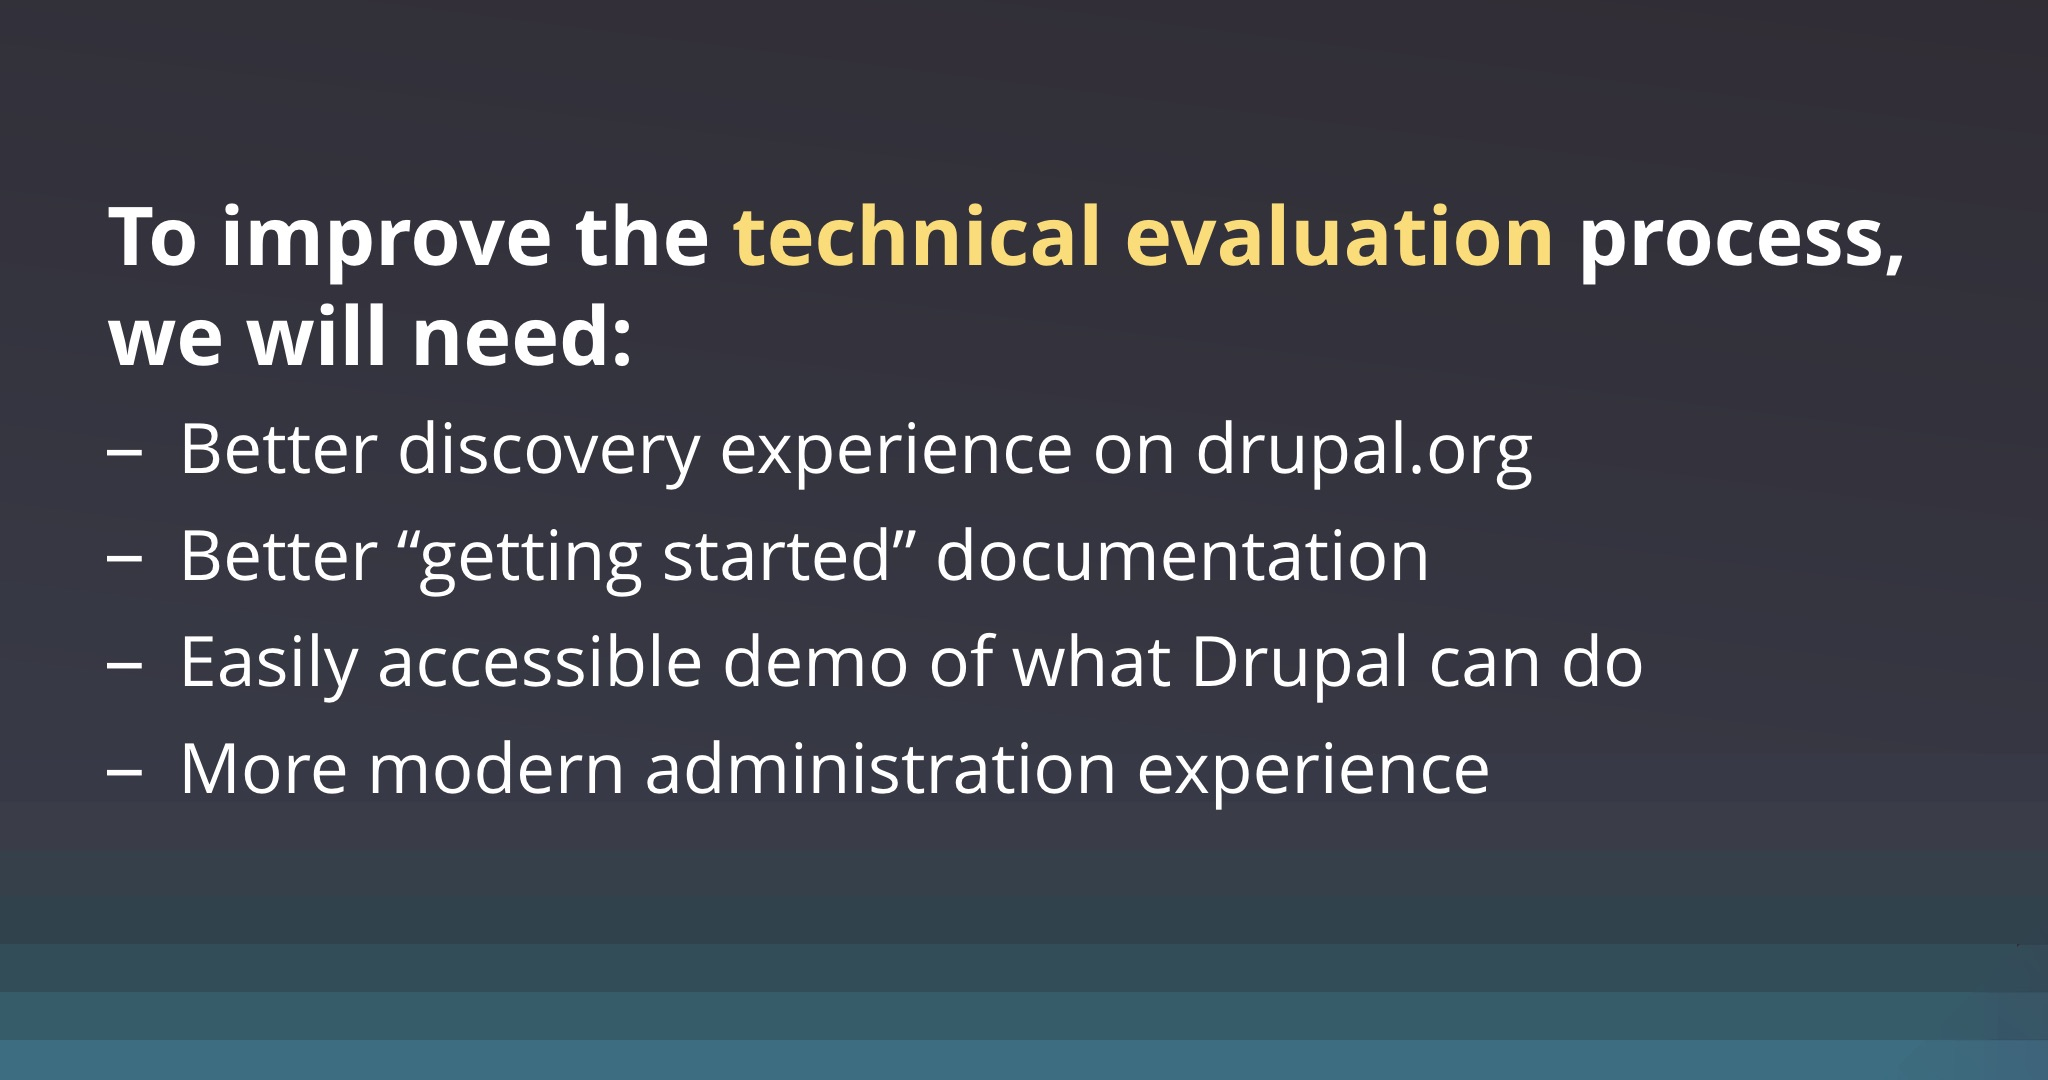 Improve technical evaluator experience